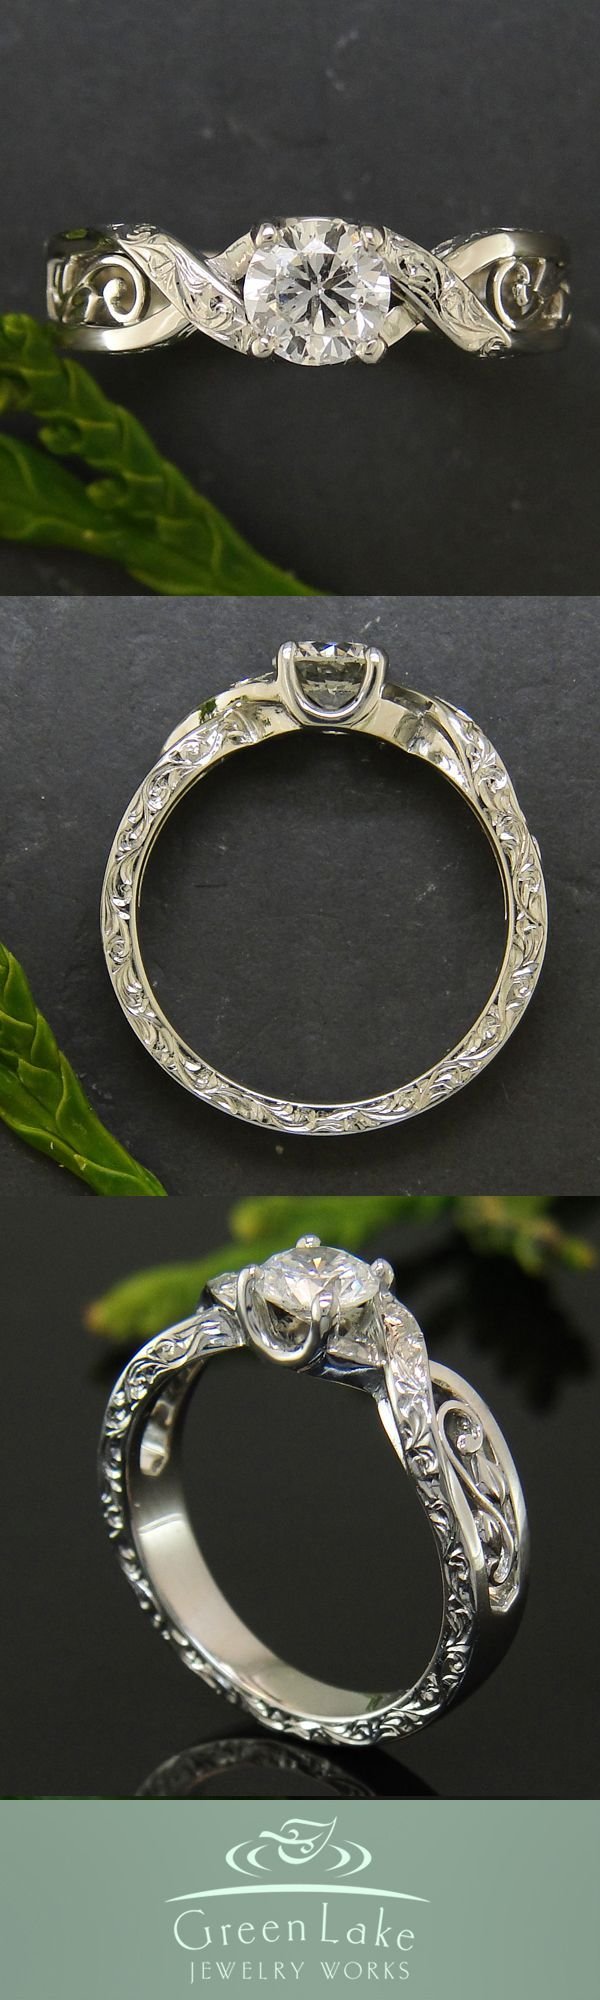 Engagement Ring - White gold and diamond ring with custom cross over design that boasts hand engraved details, hand fabricated leaves and filigree, and sapphires.